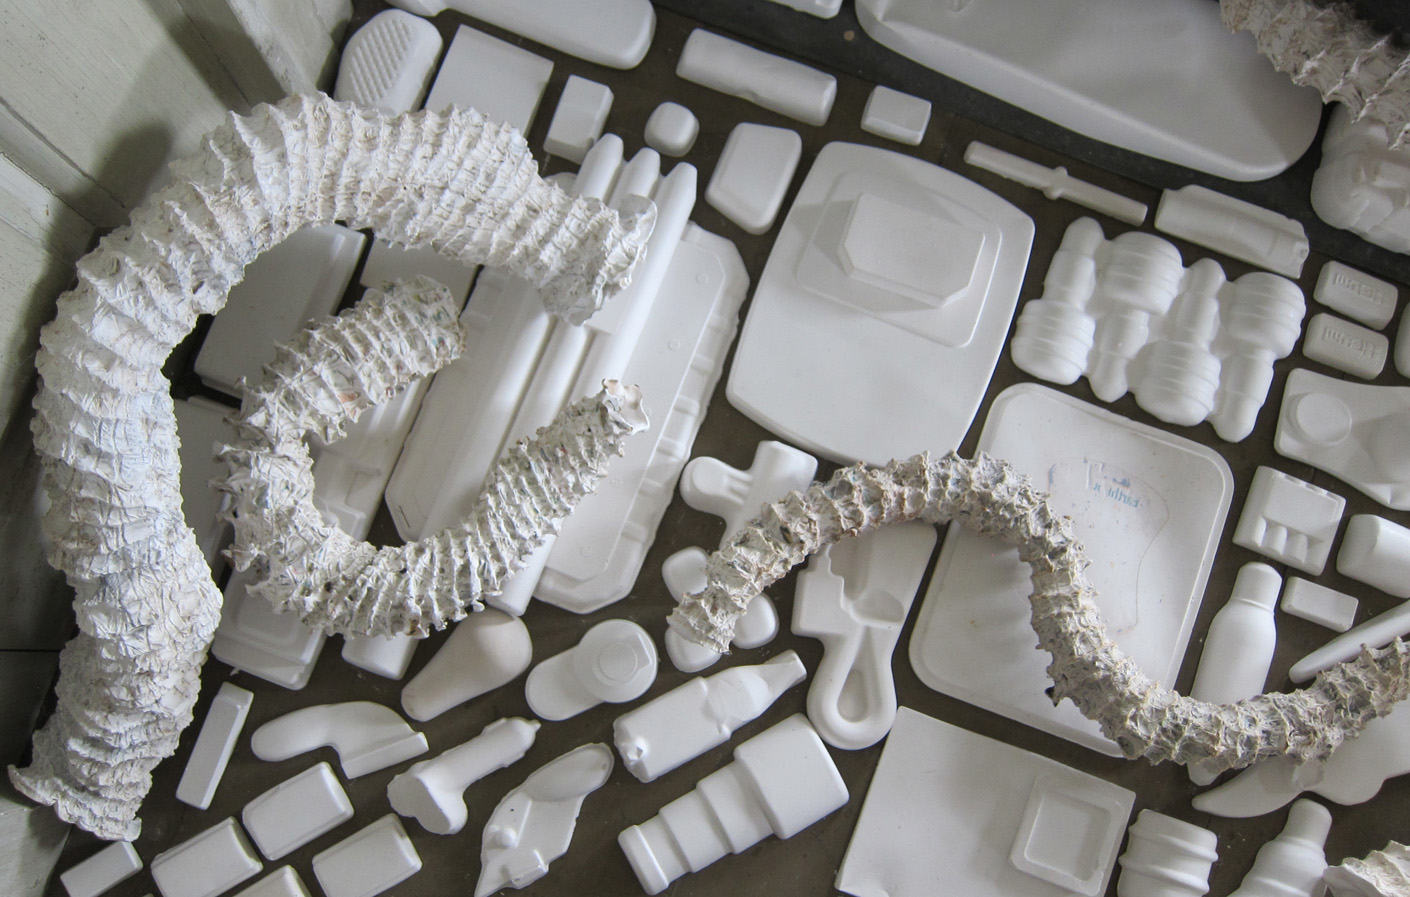 """Seemingly Unconnected Events  2011 Wentworth-Coolidge State Historic Mansion Portsmouth, NH  Main installation in Coolidge Room  DETAIL of plaster casts of fabricated, larger-than-life seaworm habitat tubes (Hydroides Dianthus) and consumer goods; seaworms 2-3"""" diameter x 17 shortest L and 37"""" longest; consumer goods life-sized."""